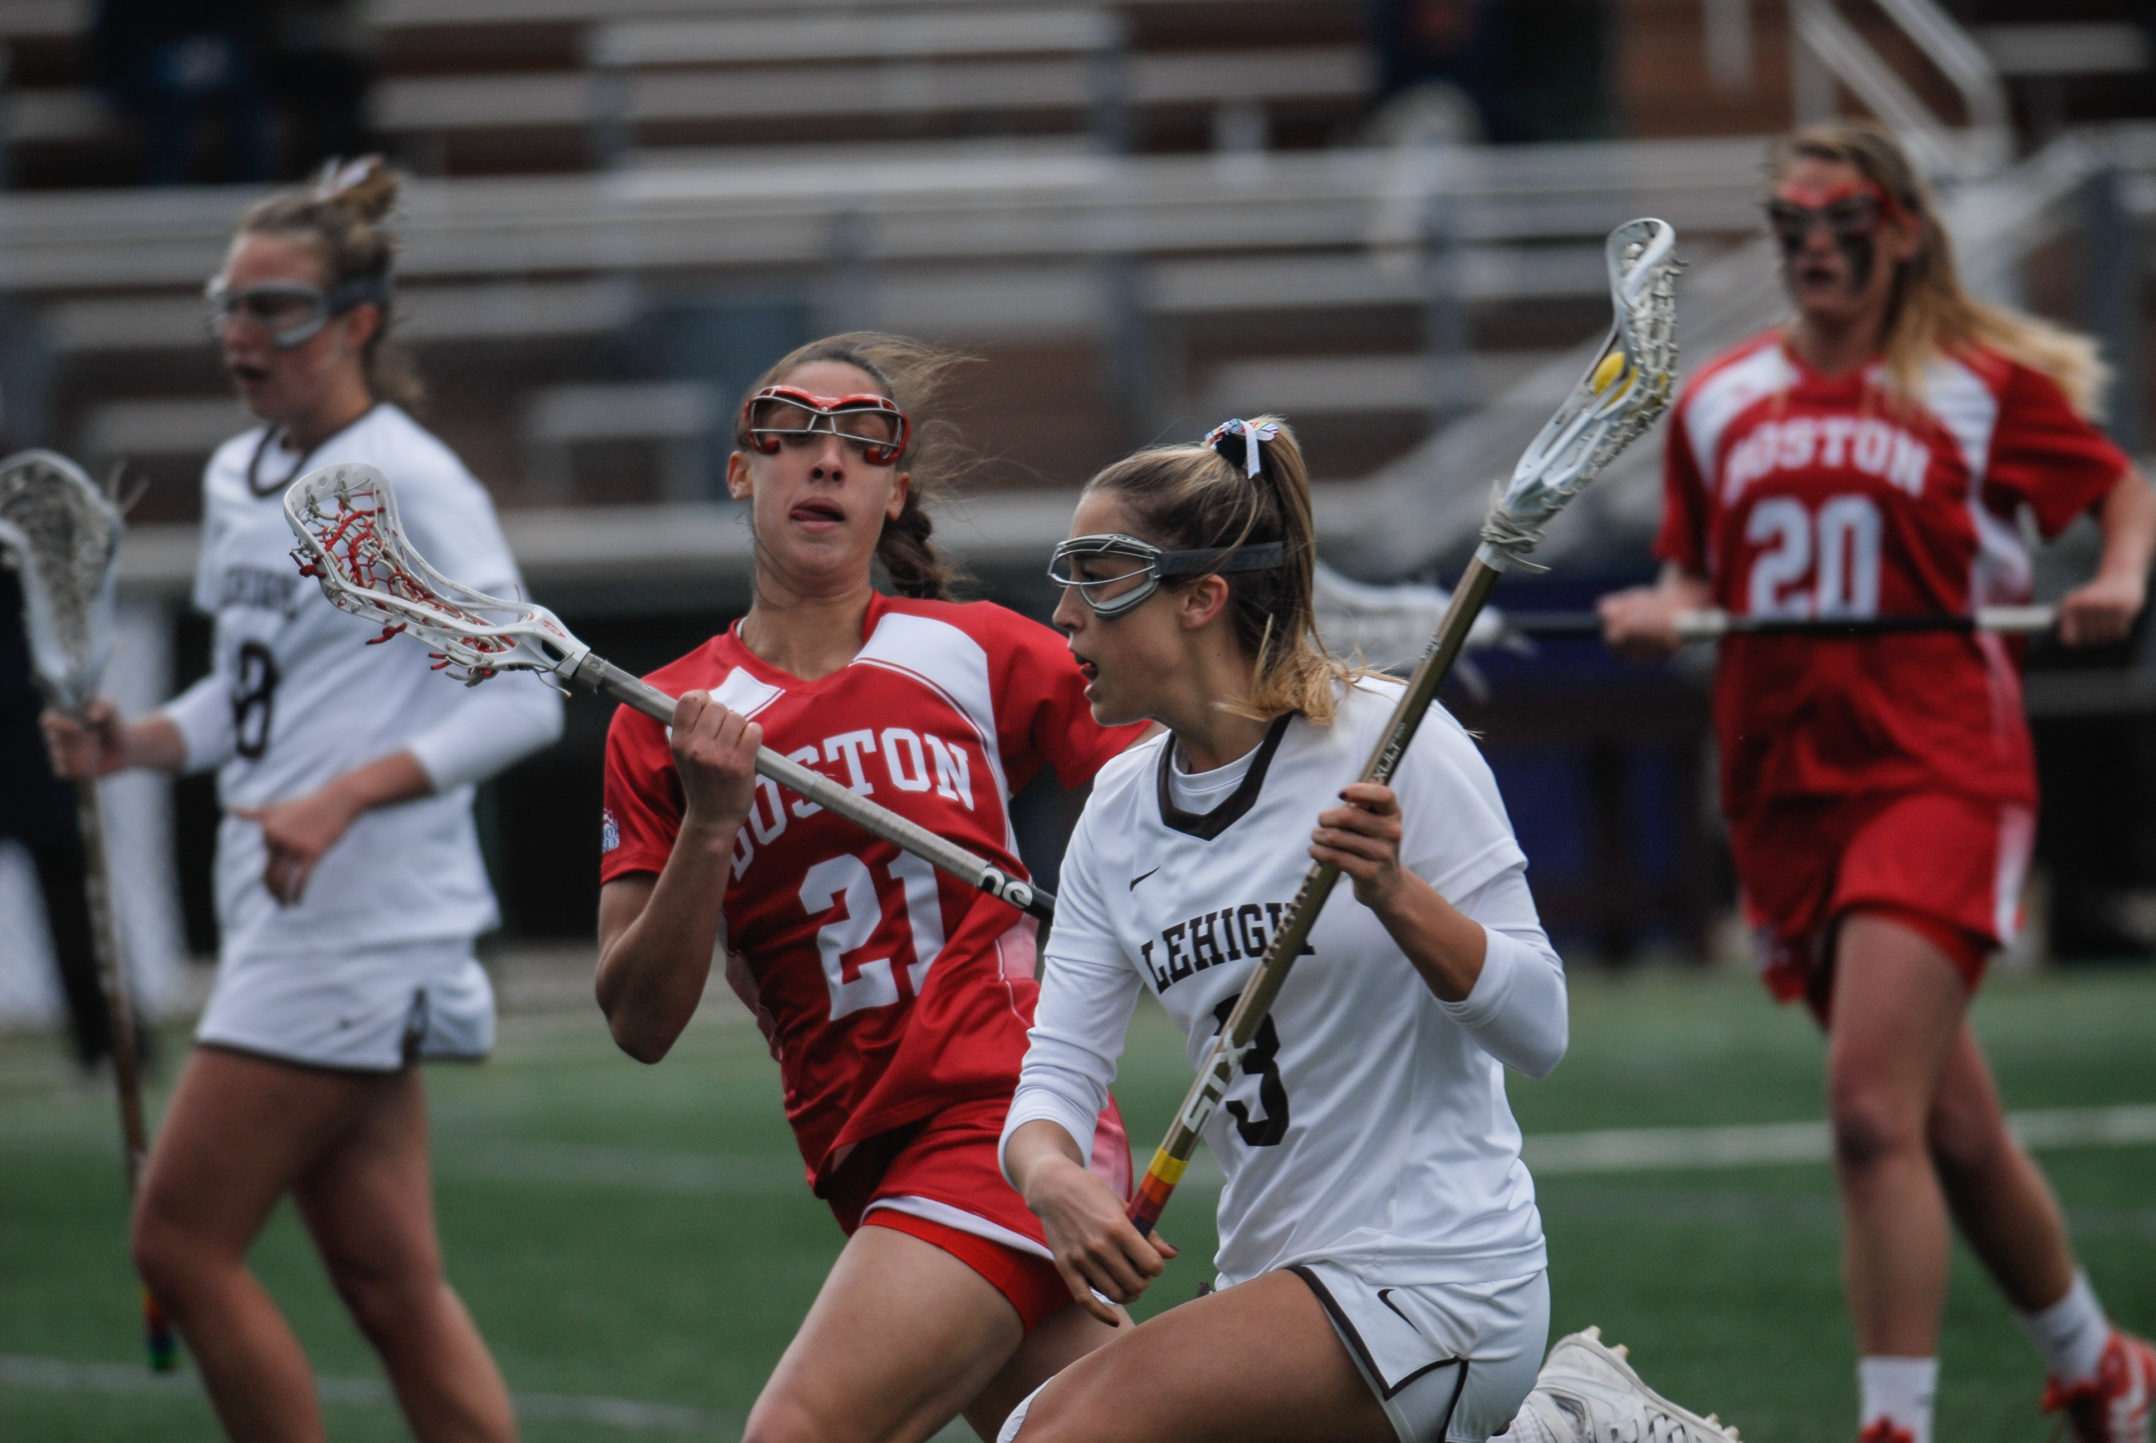 Junior attacker Haley Wentzel drives the ball past Boston University sophomore defensemen Tonianne Magnelli during Lehigh's game against Boston University on Saturday, April 1, 2017, at the Ulrich Sports Complex. Wentzel had one goal during the game. (Erik Thomas/B&W Staff)